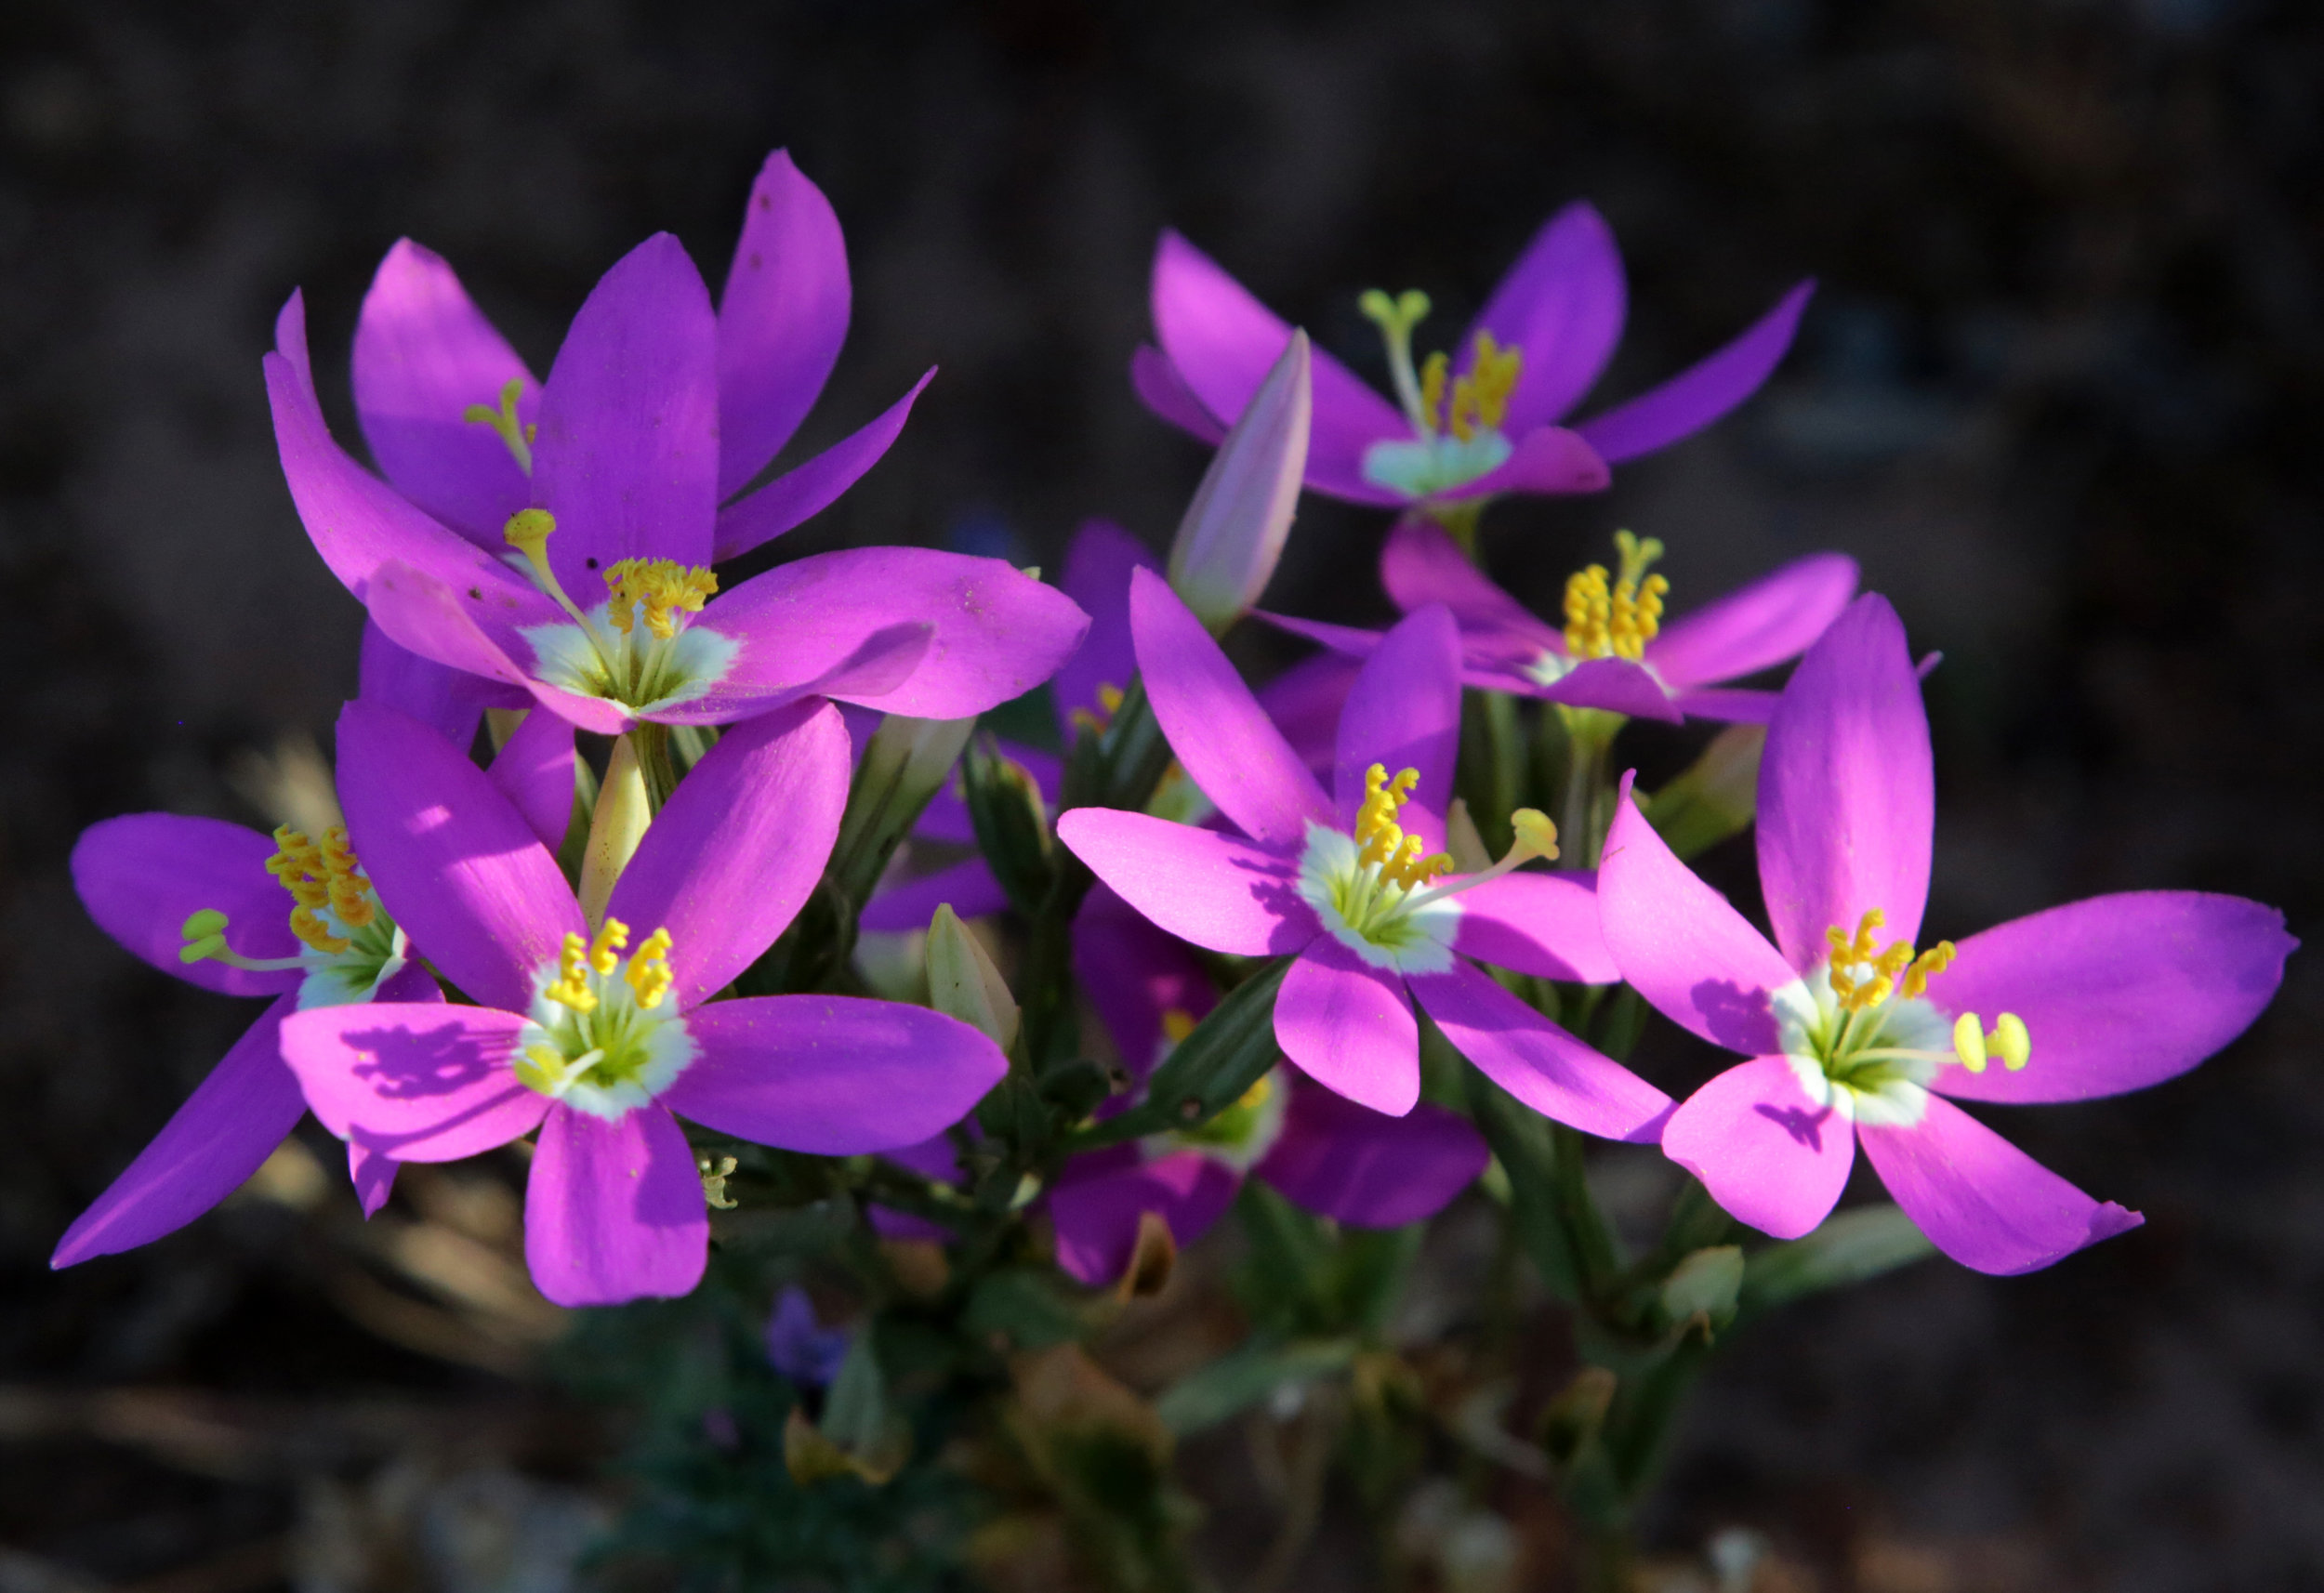 California centaury (Zeltnera venusta) glow in the setting sun on Del Mar Mesa Preserve near my studio.